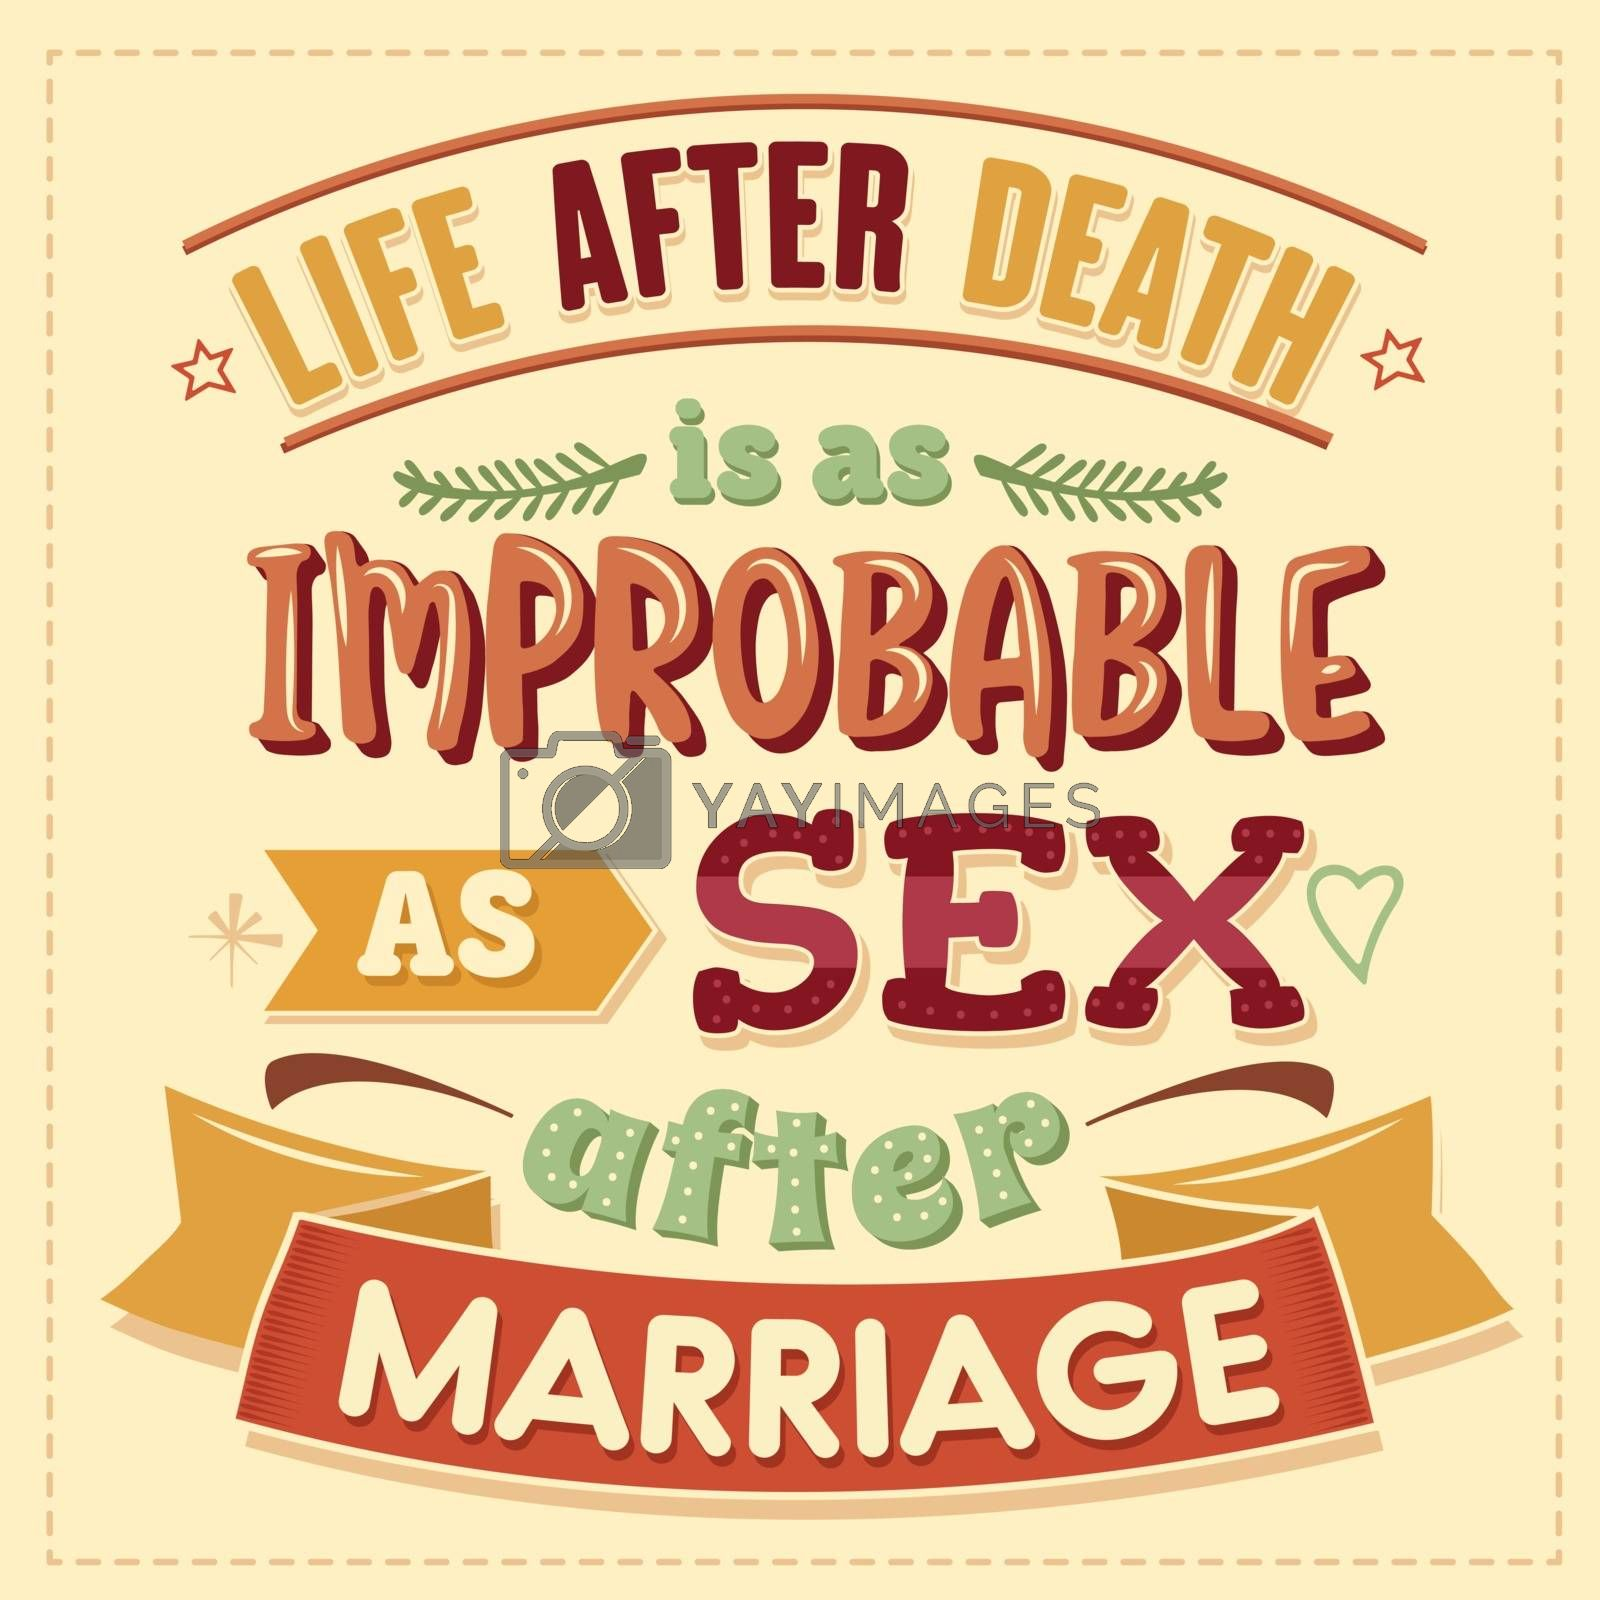 Live after death is as improbable as sex after marriage. Funny inspirational quote. Hand drawn illustration with hand-lettering and decoration elements. Drawing for prints on t-shirts and bags, stationary or poster.